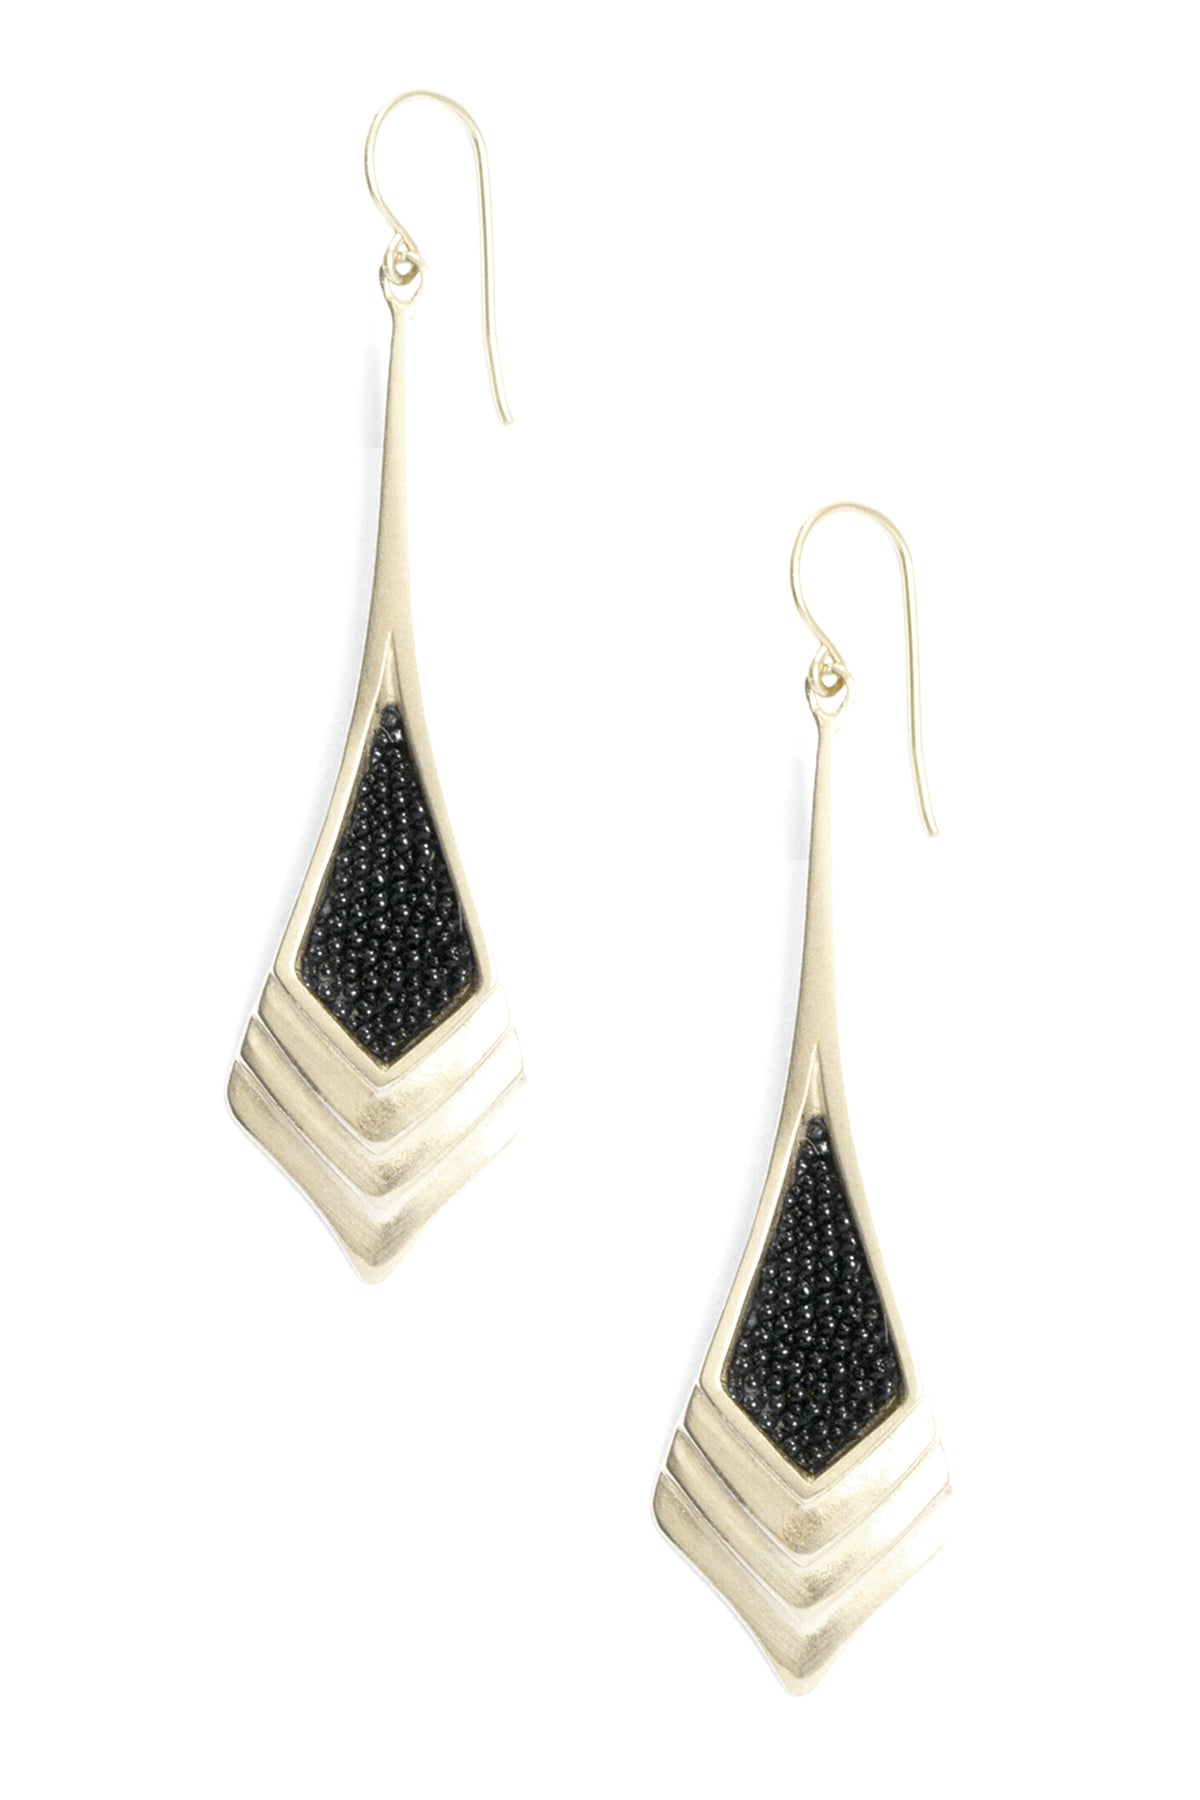 Image of CHRYSLER TOWER EARRINGS